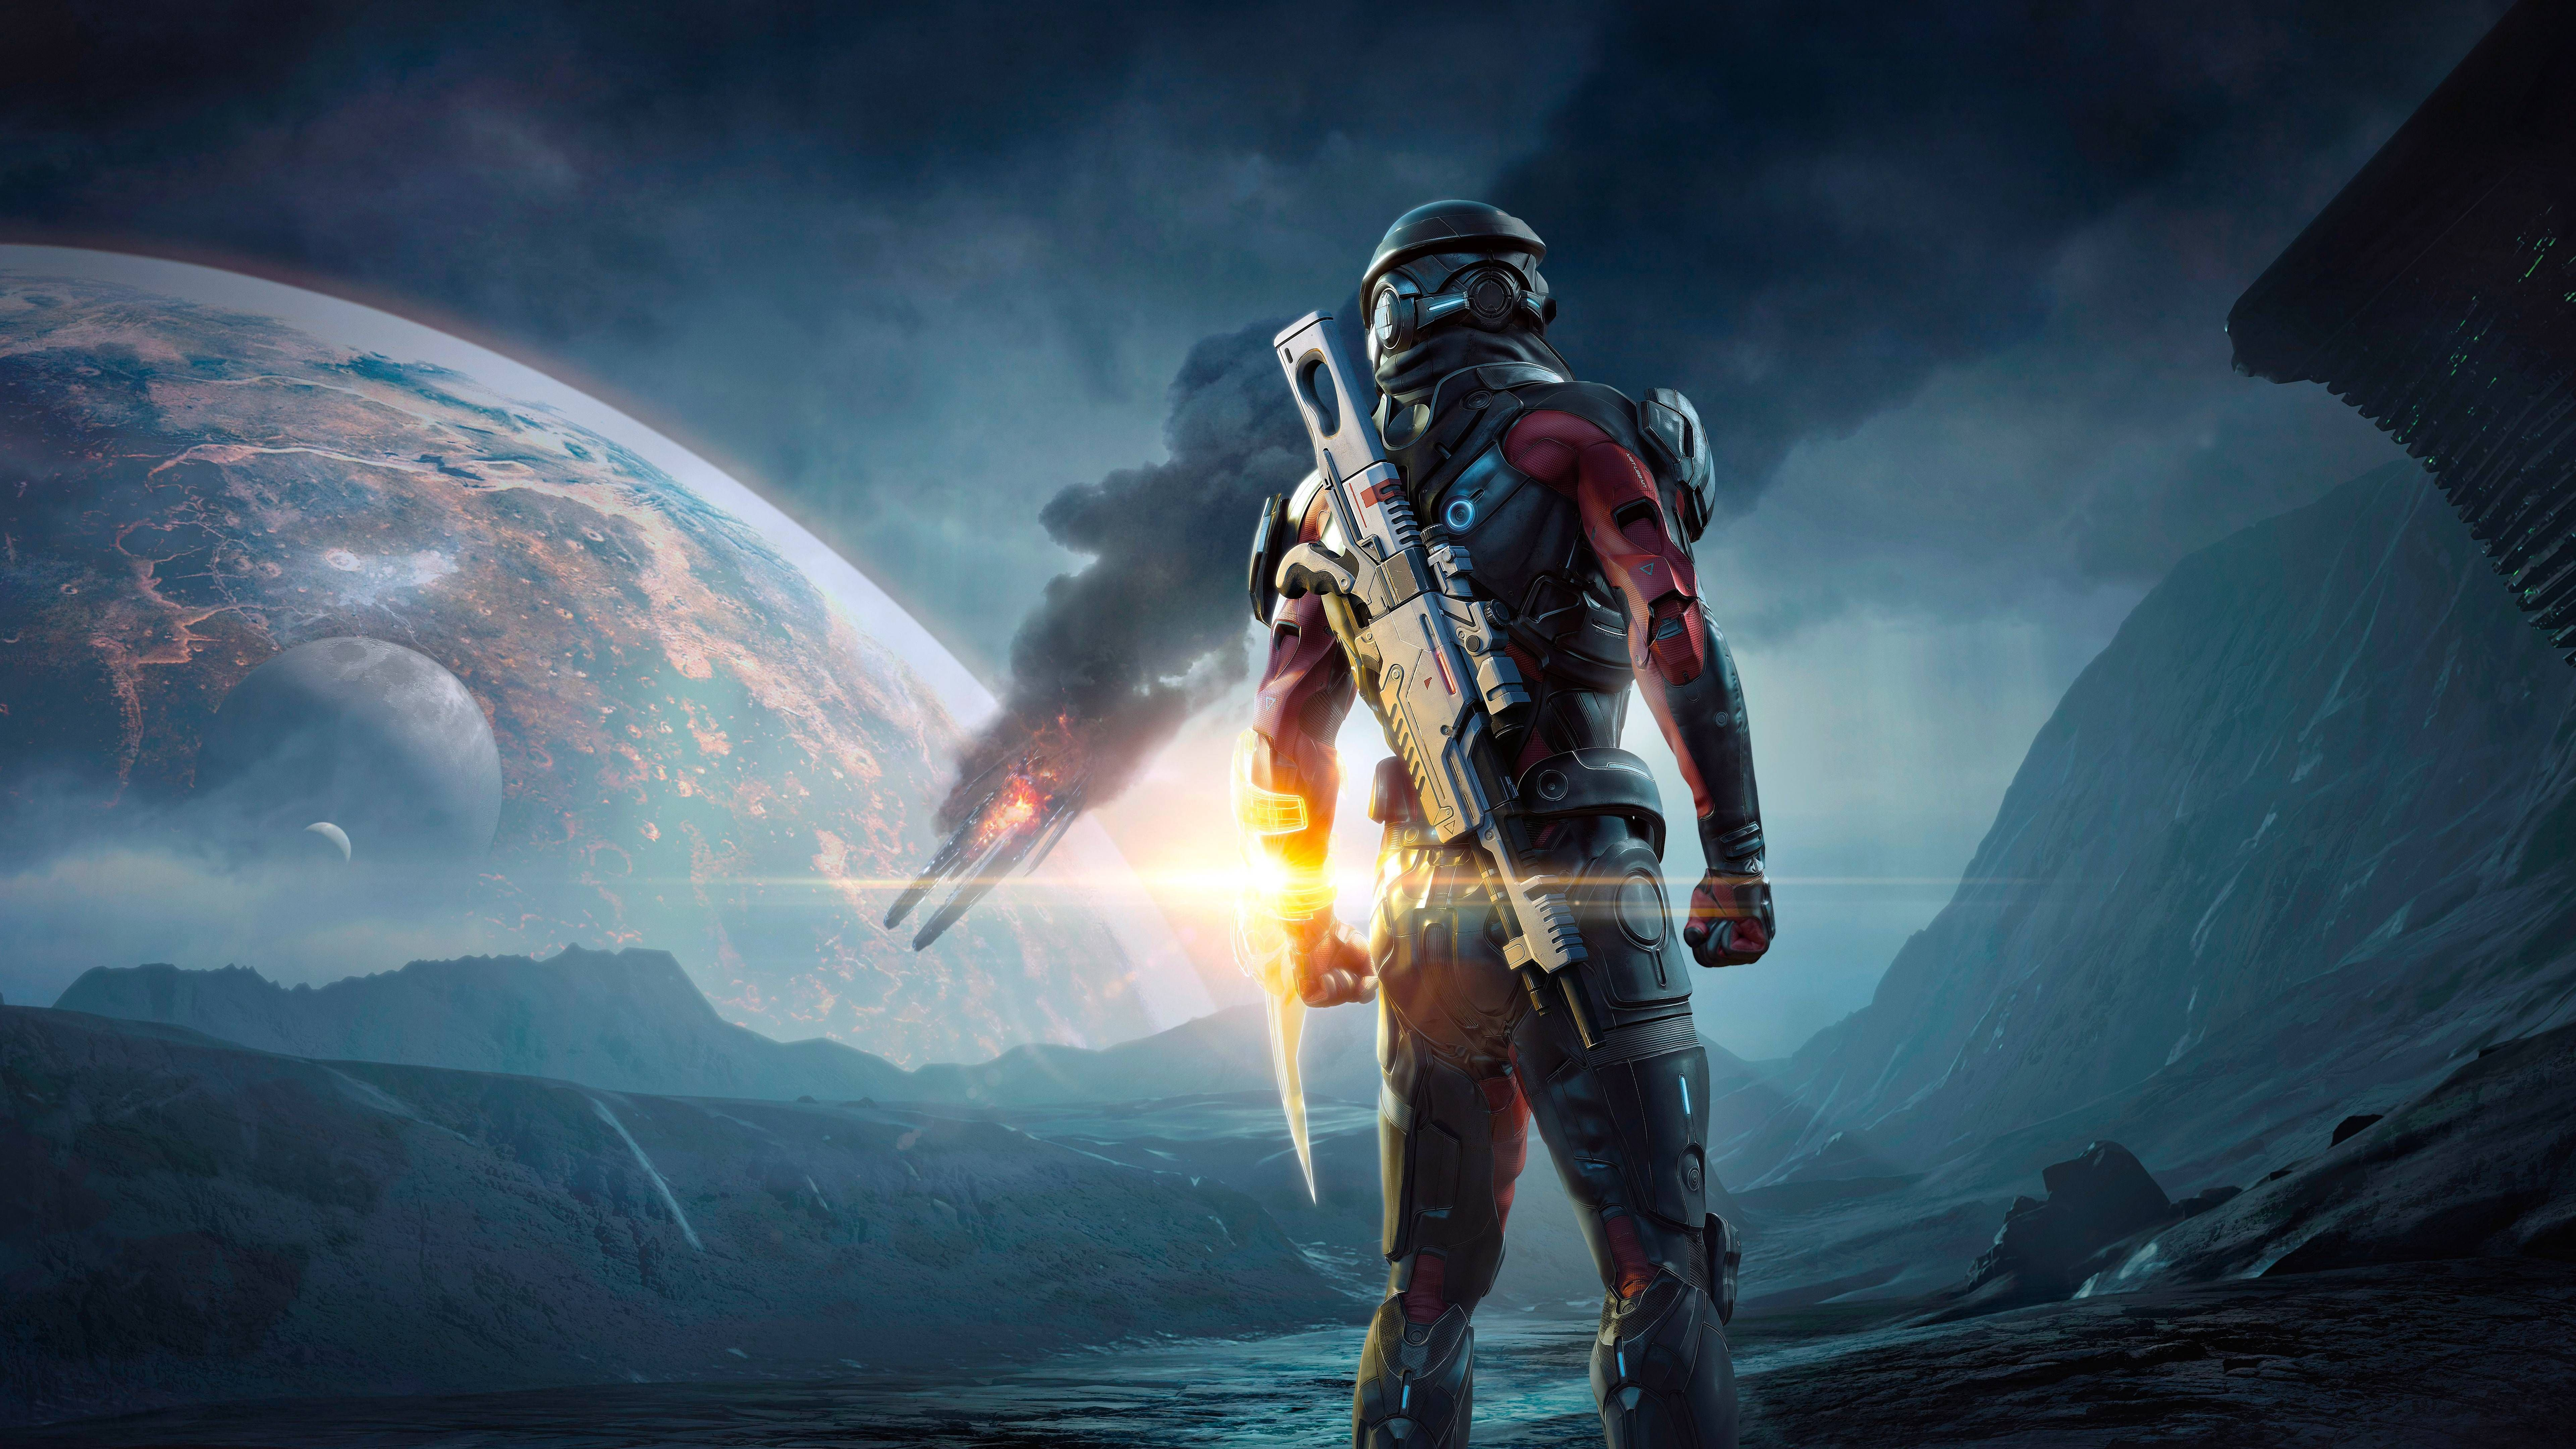 Mass Effect Andromeda 4k Wallpaper 7680 4320 Mass Effect 4k Wallpapers For Pc Gaming Wallpapers